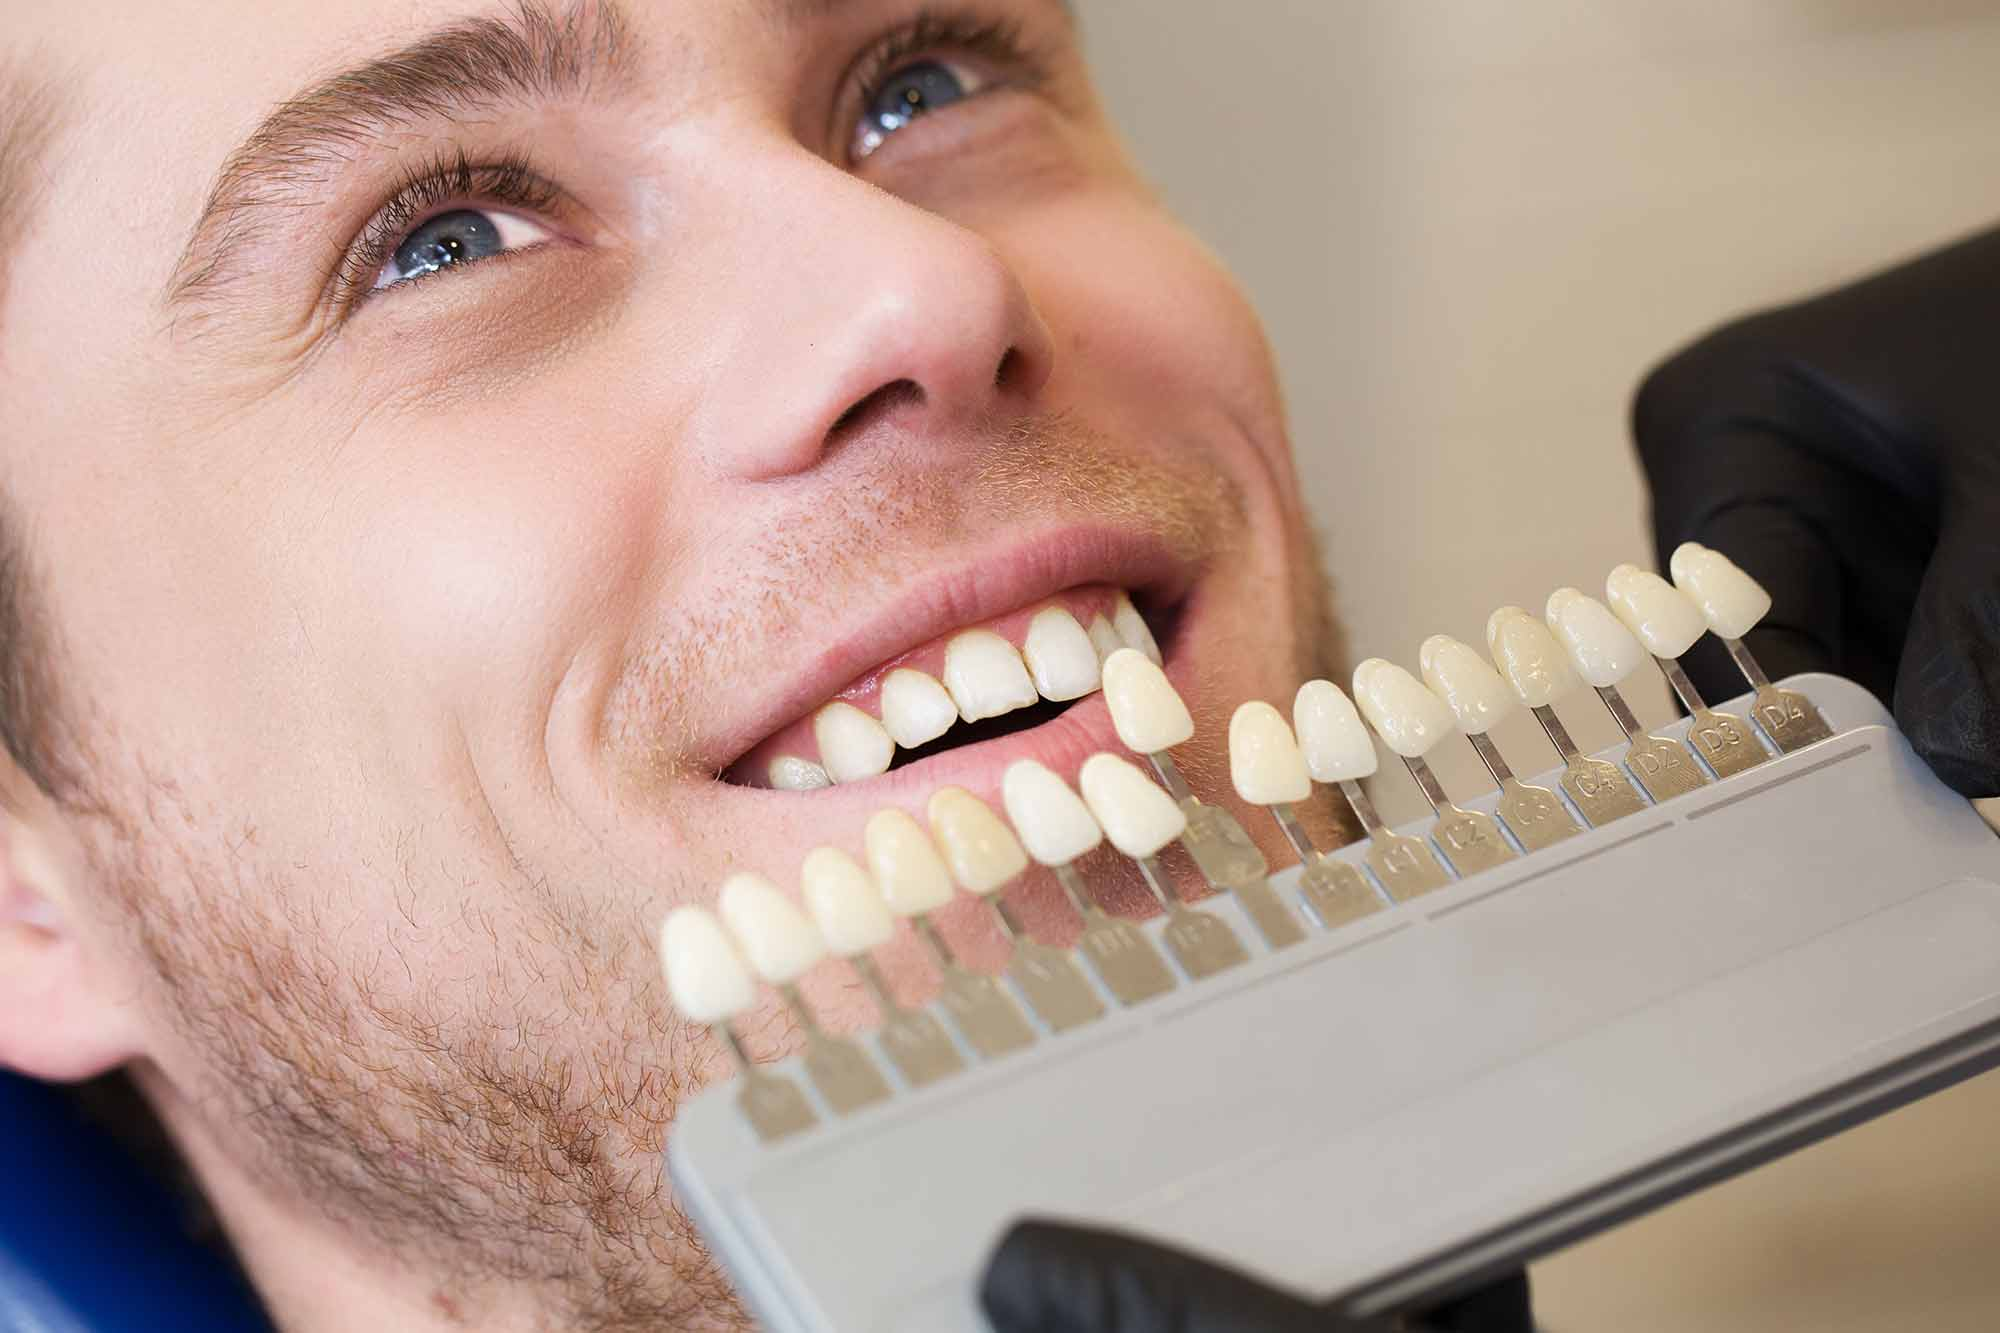 Richard Scarborough talks to Ash Parmar about the increase in interest in cosmetic dentistry during lockdown and whether that's here to stay